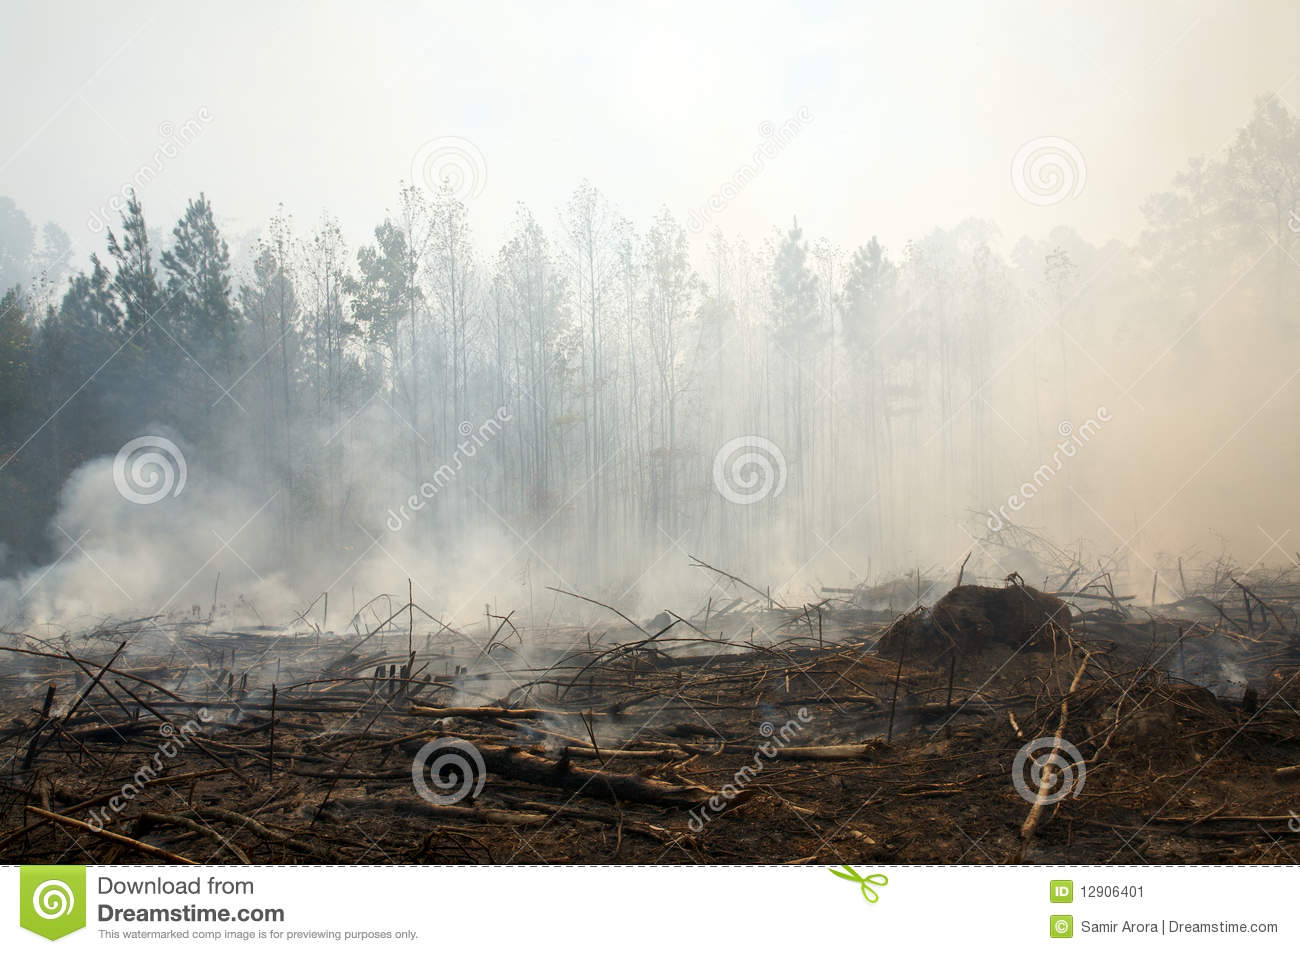 Charred landscape and smoke from a prescribed fire